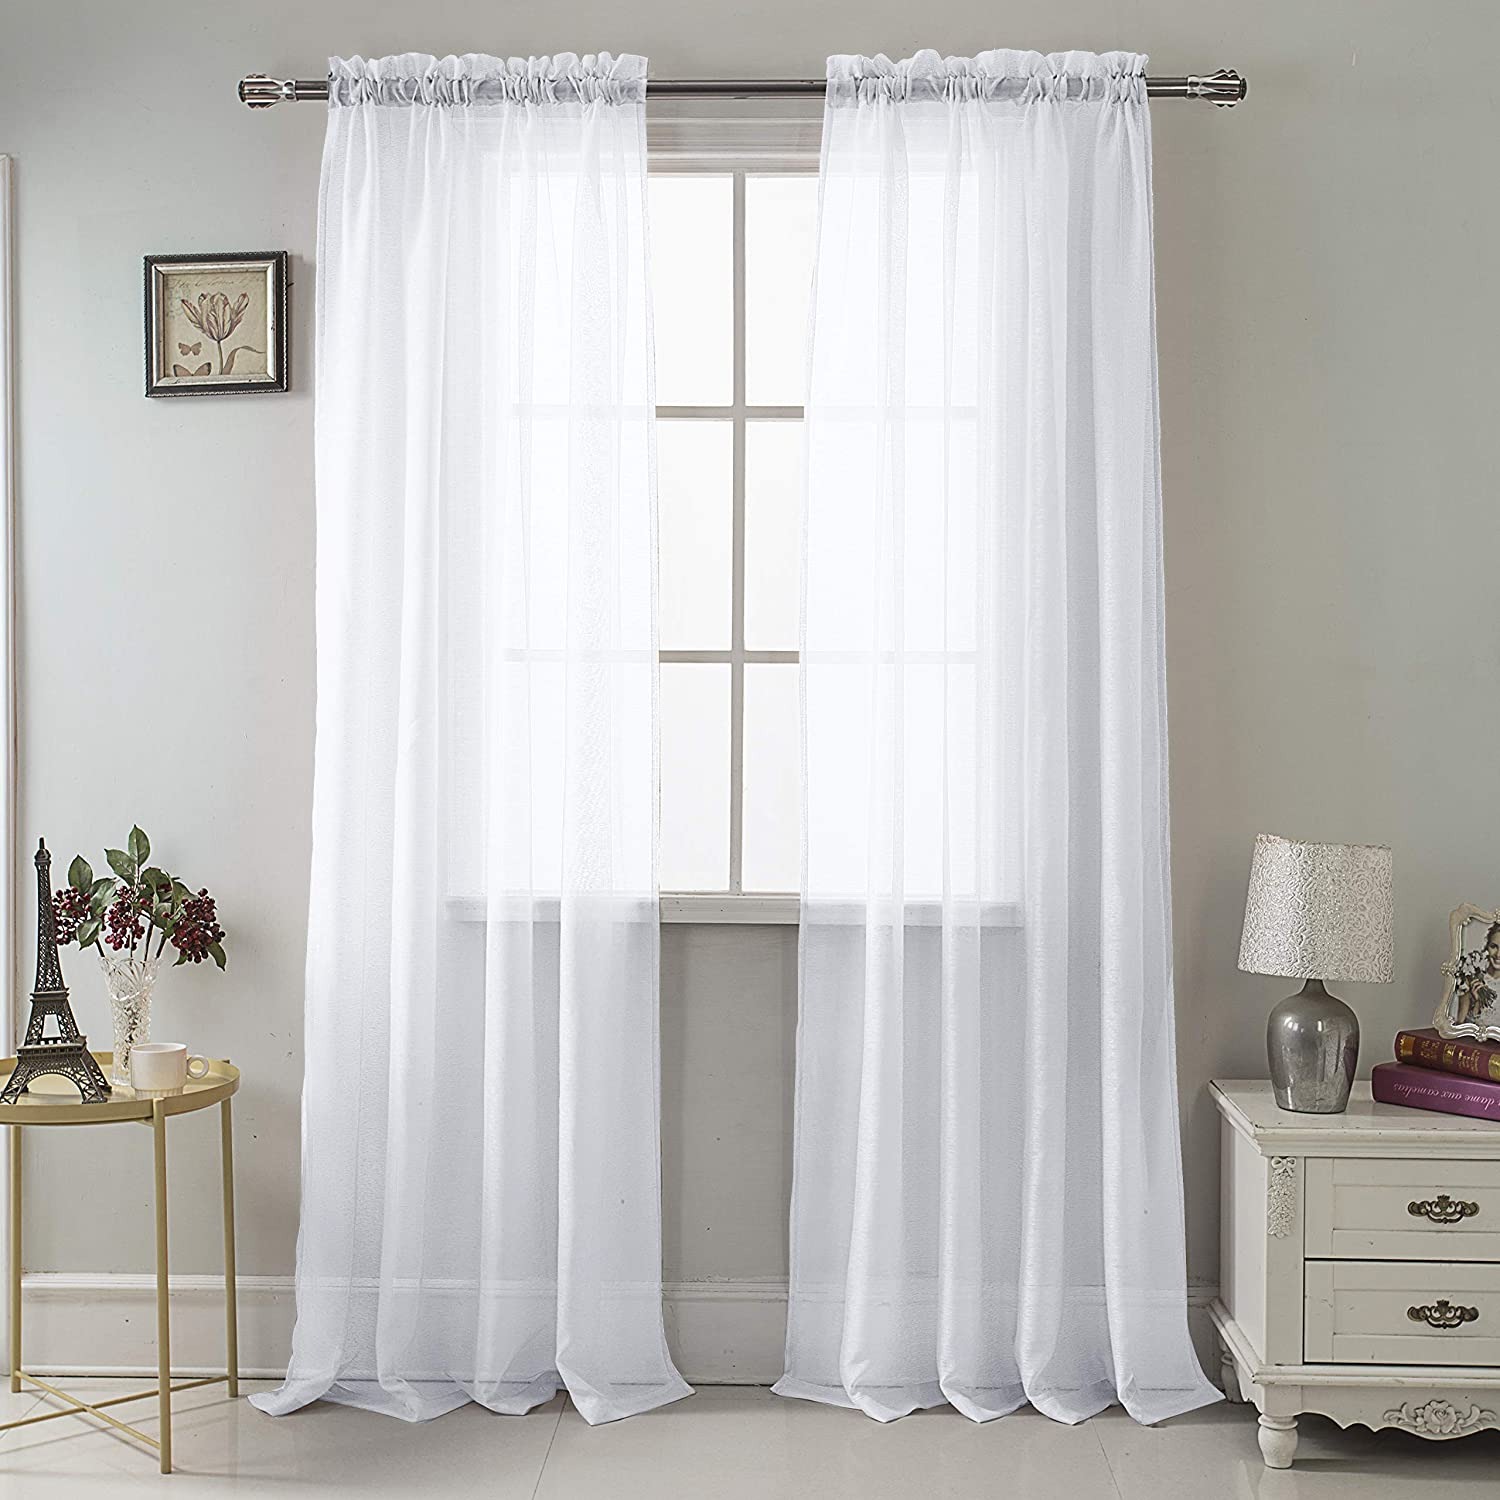 Amazon Com Rt Designers Collection Celine Sheer 55 X 90 In Rod Pocket Curtain Panel White Home Kitchen